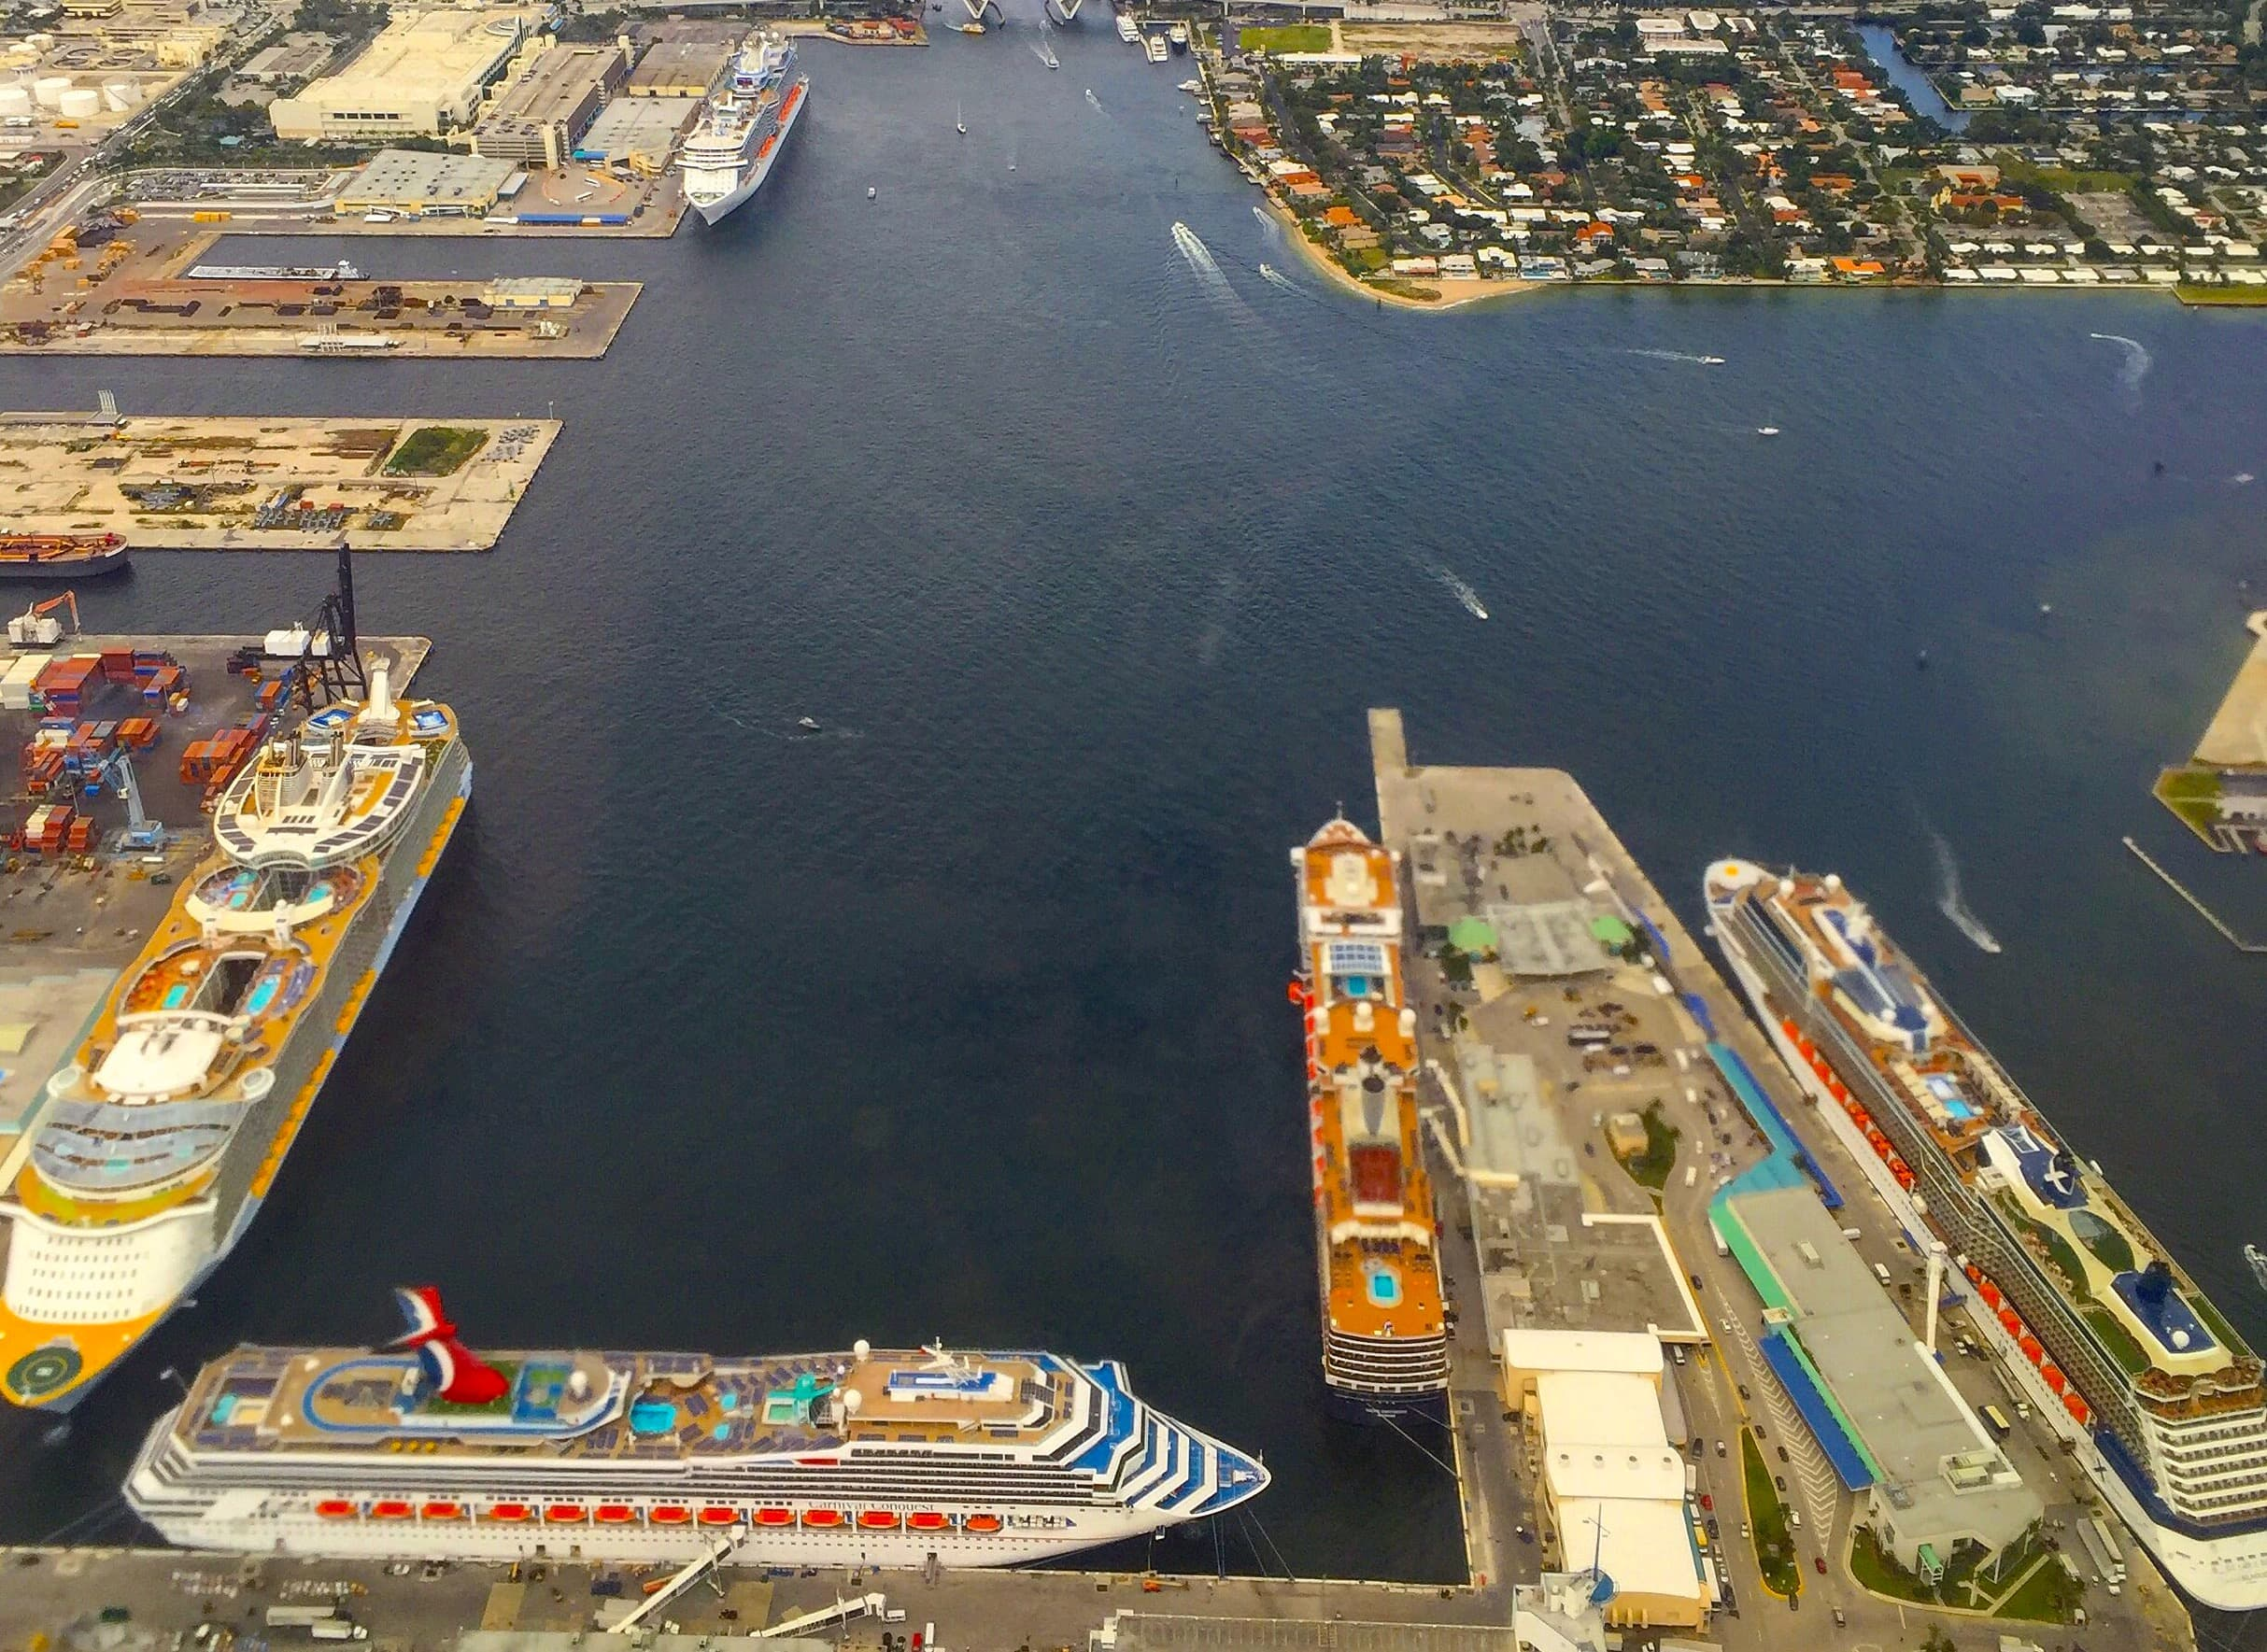 Fort Lauderdale Florida Cruise Ship Sky View Ports Cruising Isnt Just For Old People